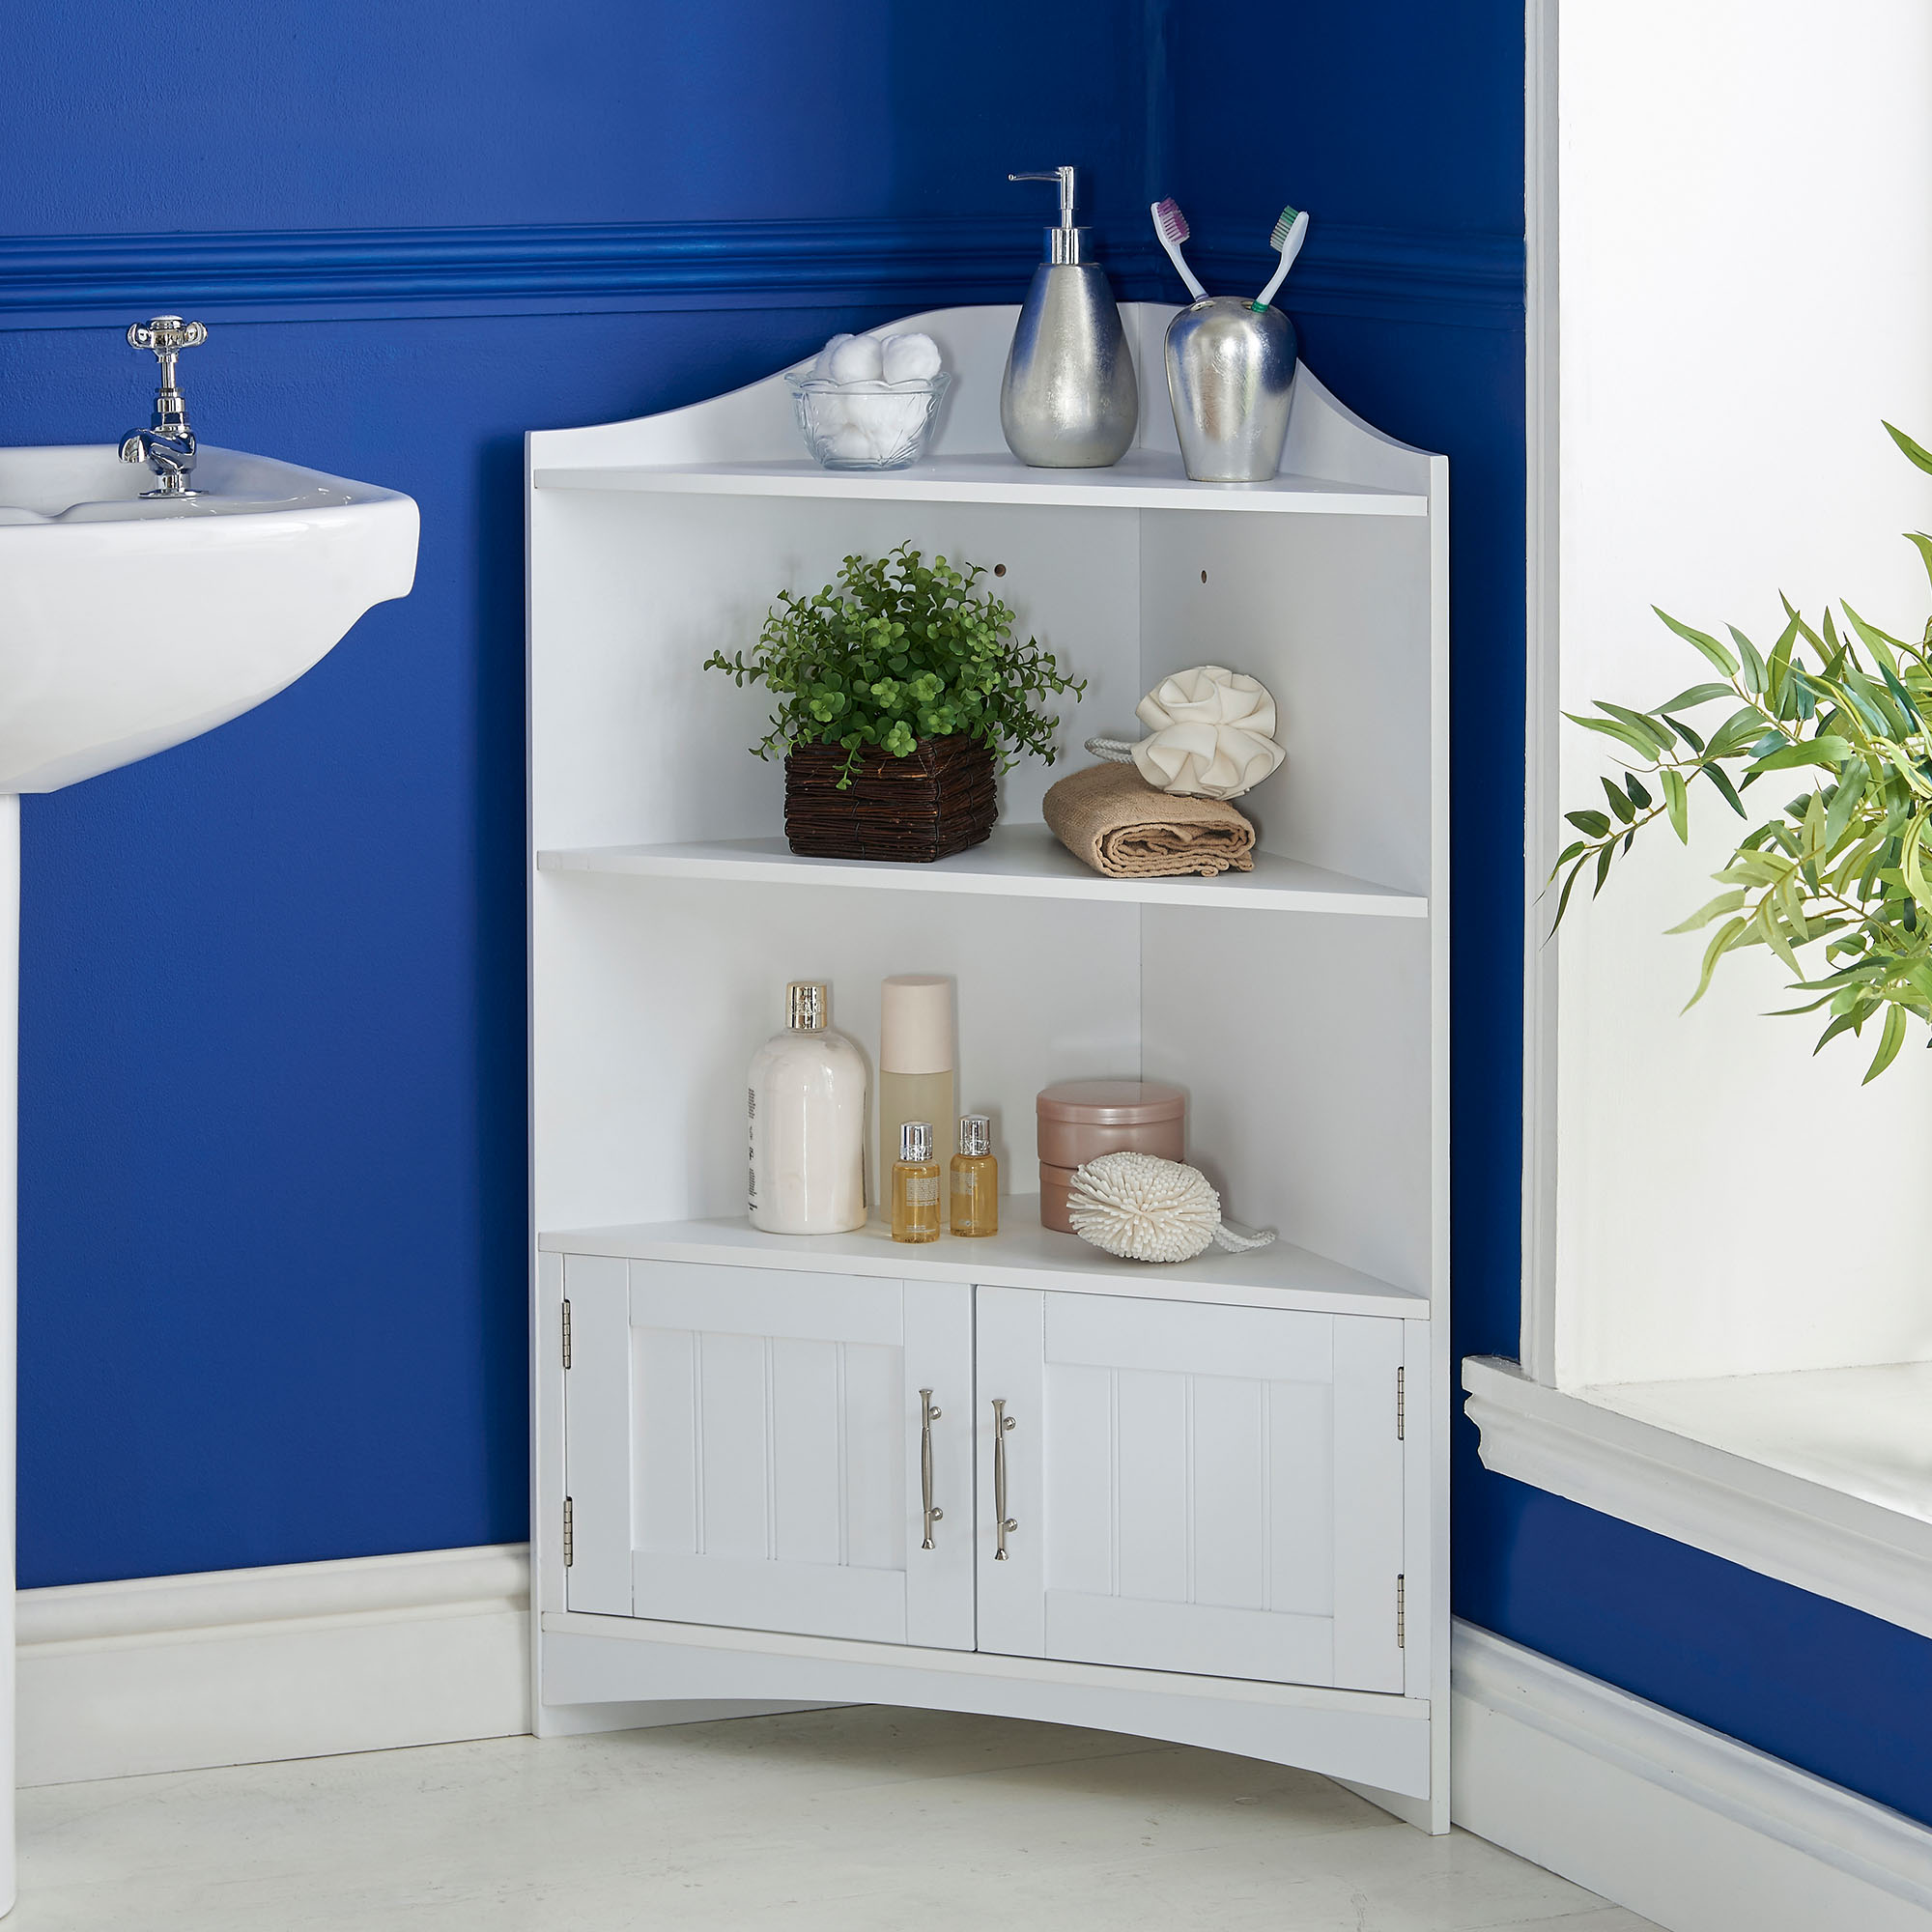 bathroom corner storage cabinets. Sentinel VonHaus Bathroom Corner Storage Cabinet Organizer With Chrome Handles \u0026 2 Doors Cabinets E